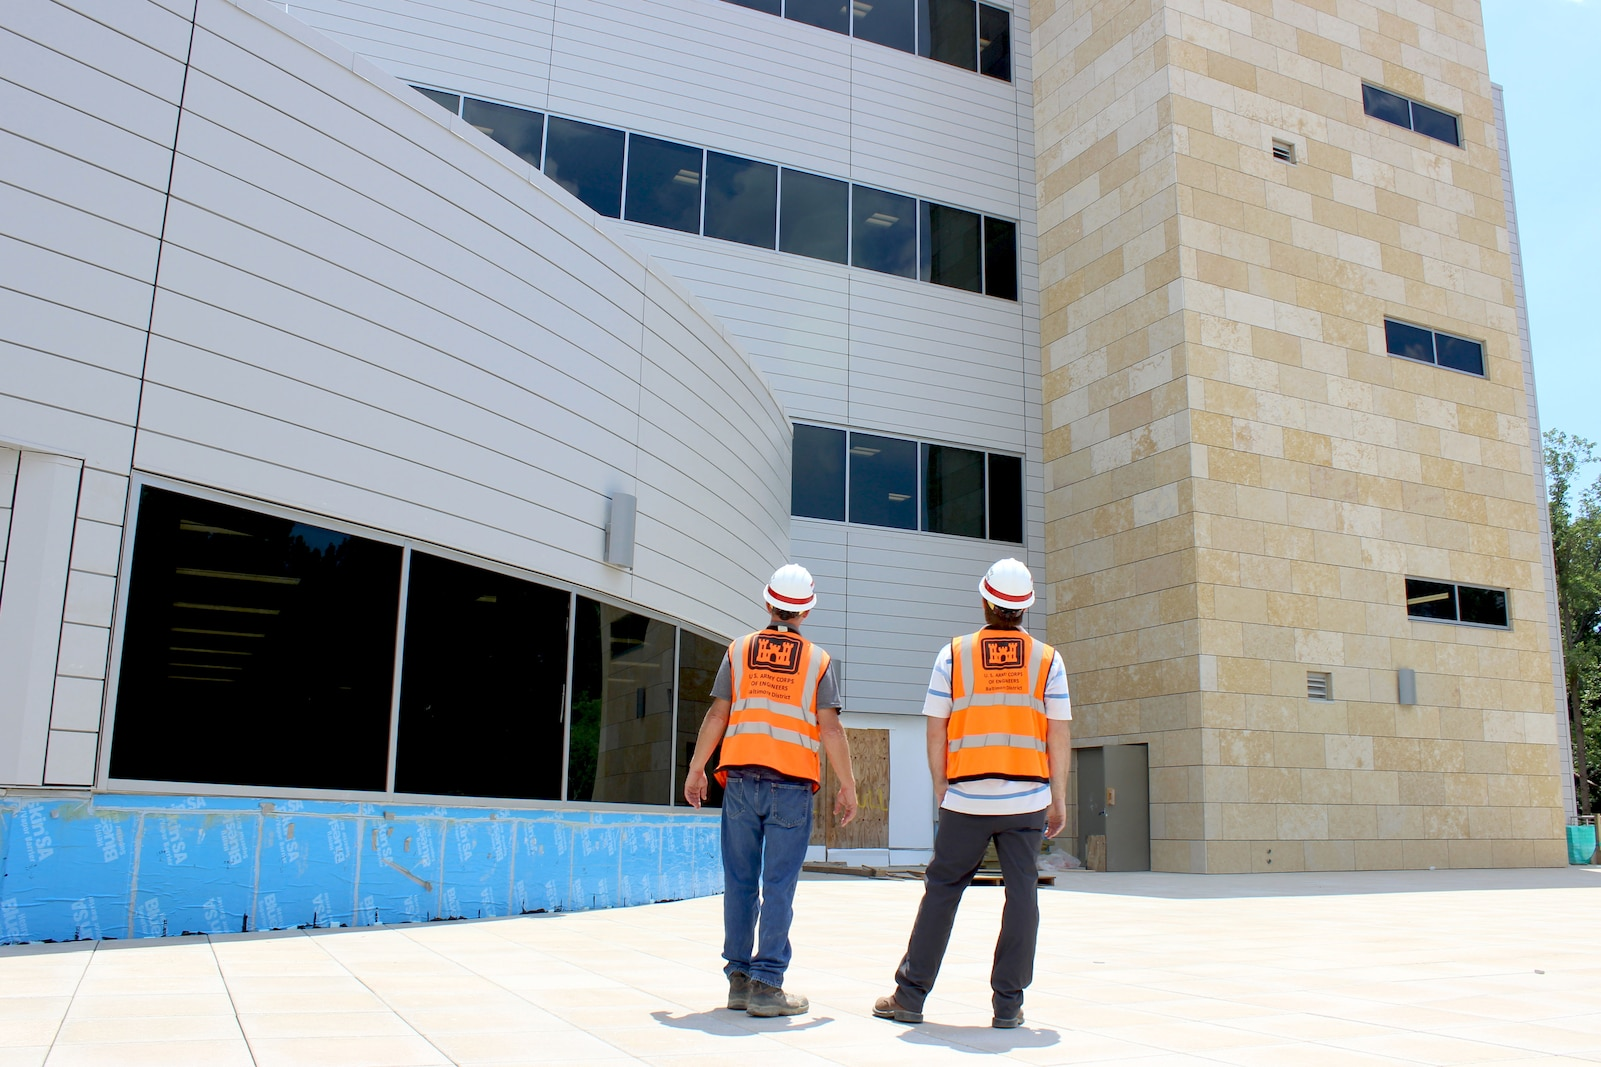 Baltimore District Construction Representatives, Robbie Powers and Martin Dougherty, stand within SAOF's courtyard on Fort Belvoir, Va. July 1, 2019. The U.S. Army Corps of Engineers, Baltimore District, is putting the finishing touches on a state-of-the-art 381,000-square-foot SAOF that will provide the U.S. Army Intelligence and Security Command a consolidated administrative facility to well-equip them for future operations.